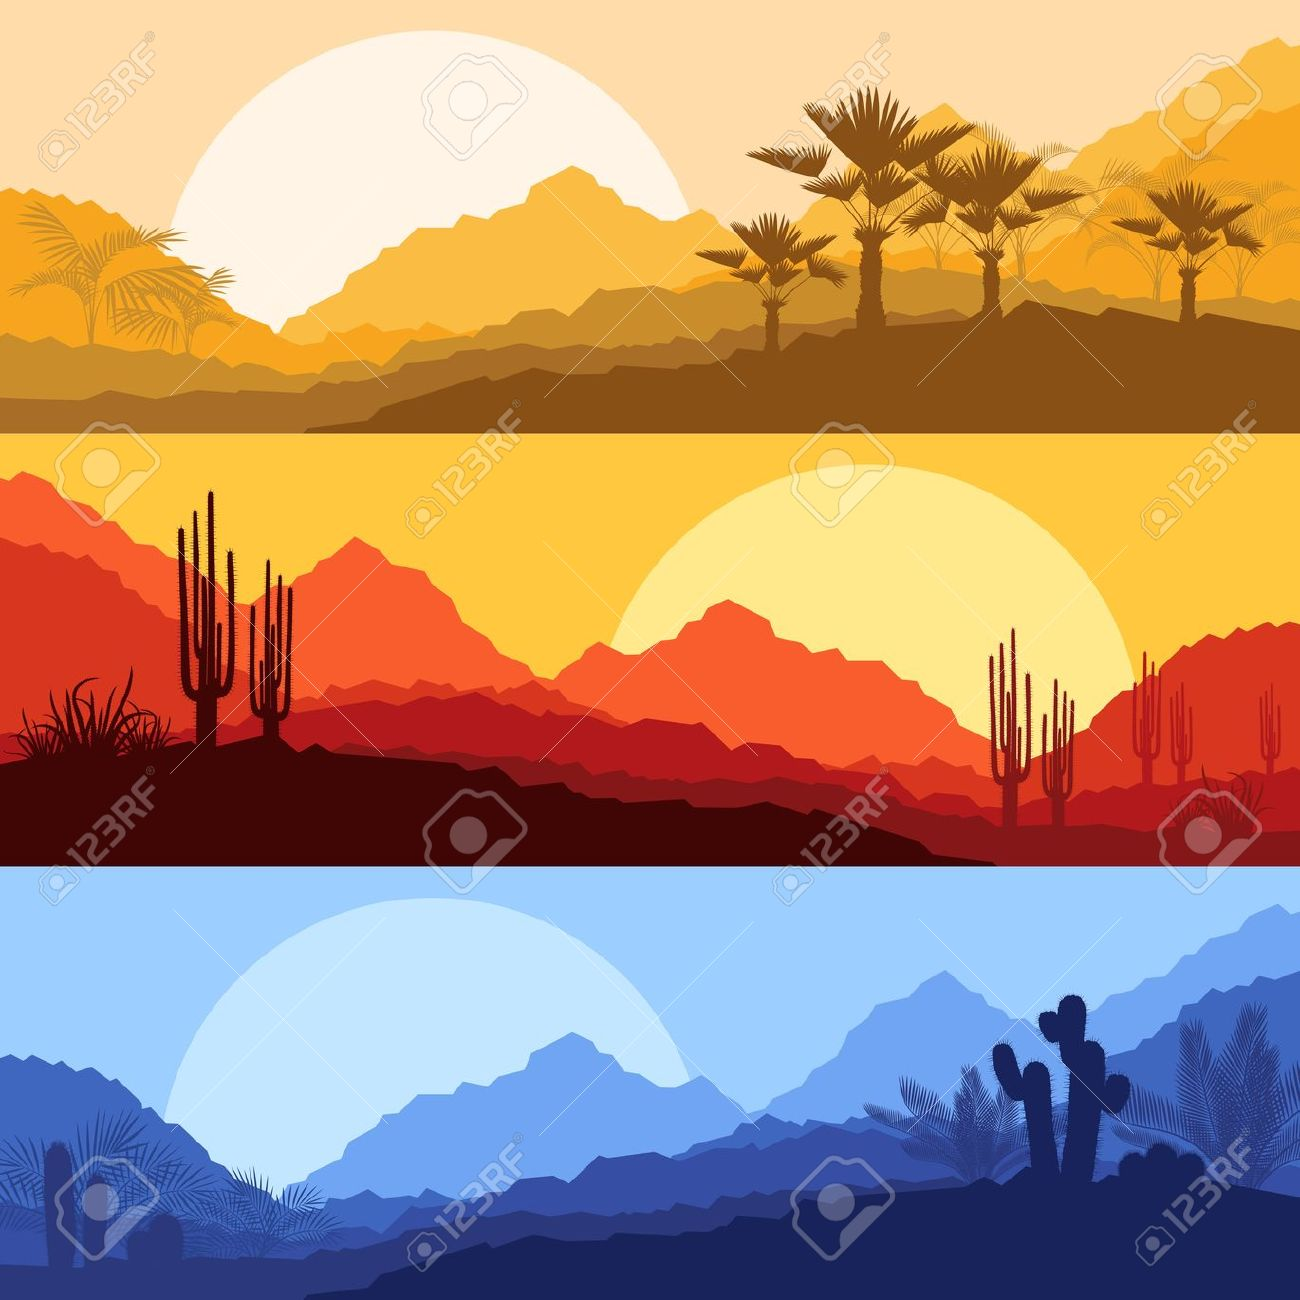 0 Western Alps Stock Vector Illustration And Royalty Free Western.